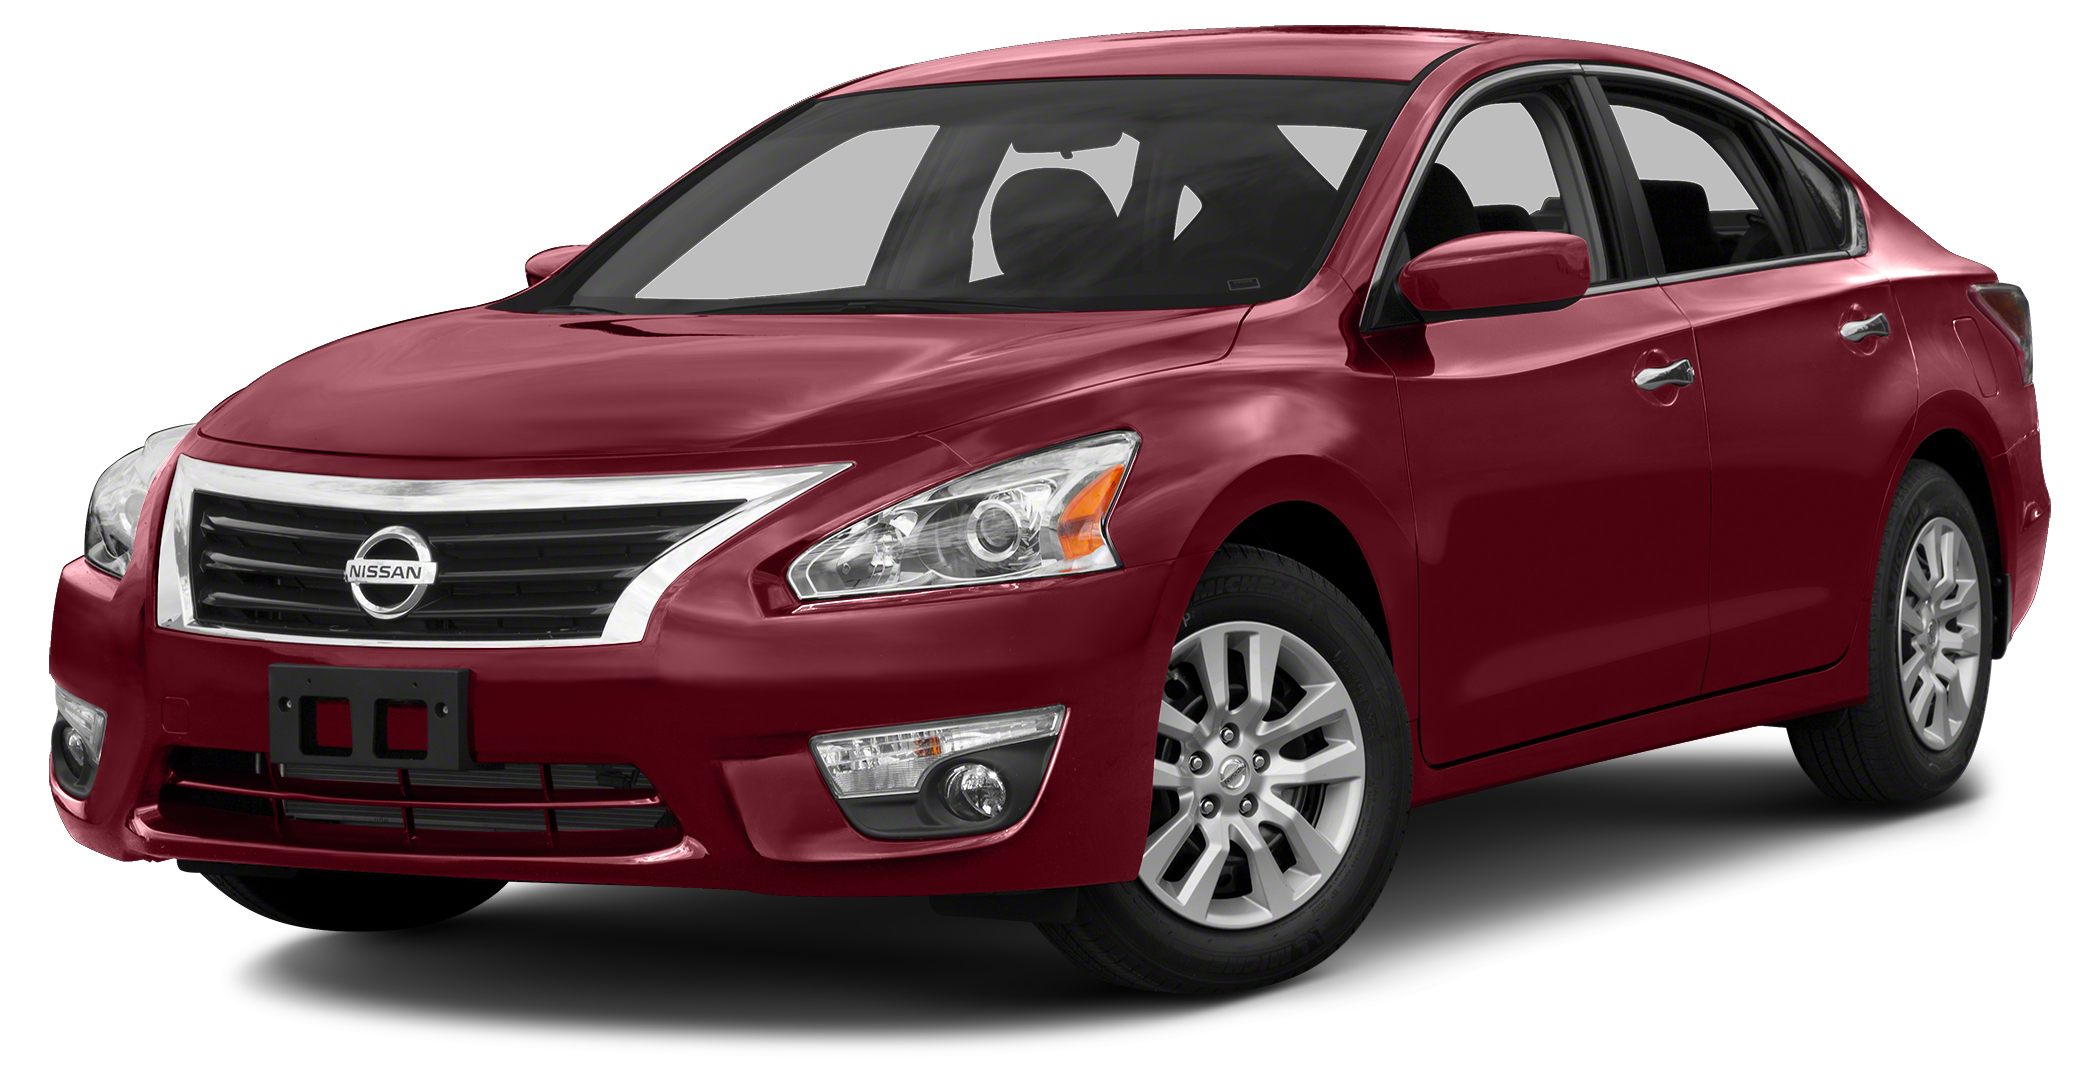 2014 Nissan Altima 25 S Delivers 38 Highway MPG and 27 City MPG Carfax One-Owner Vehicle This N